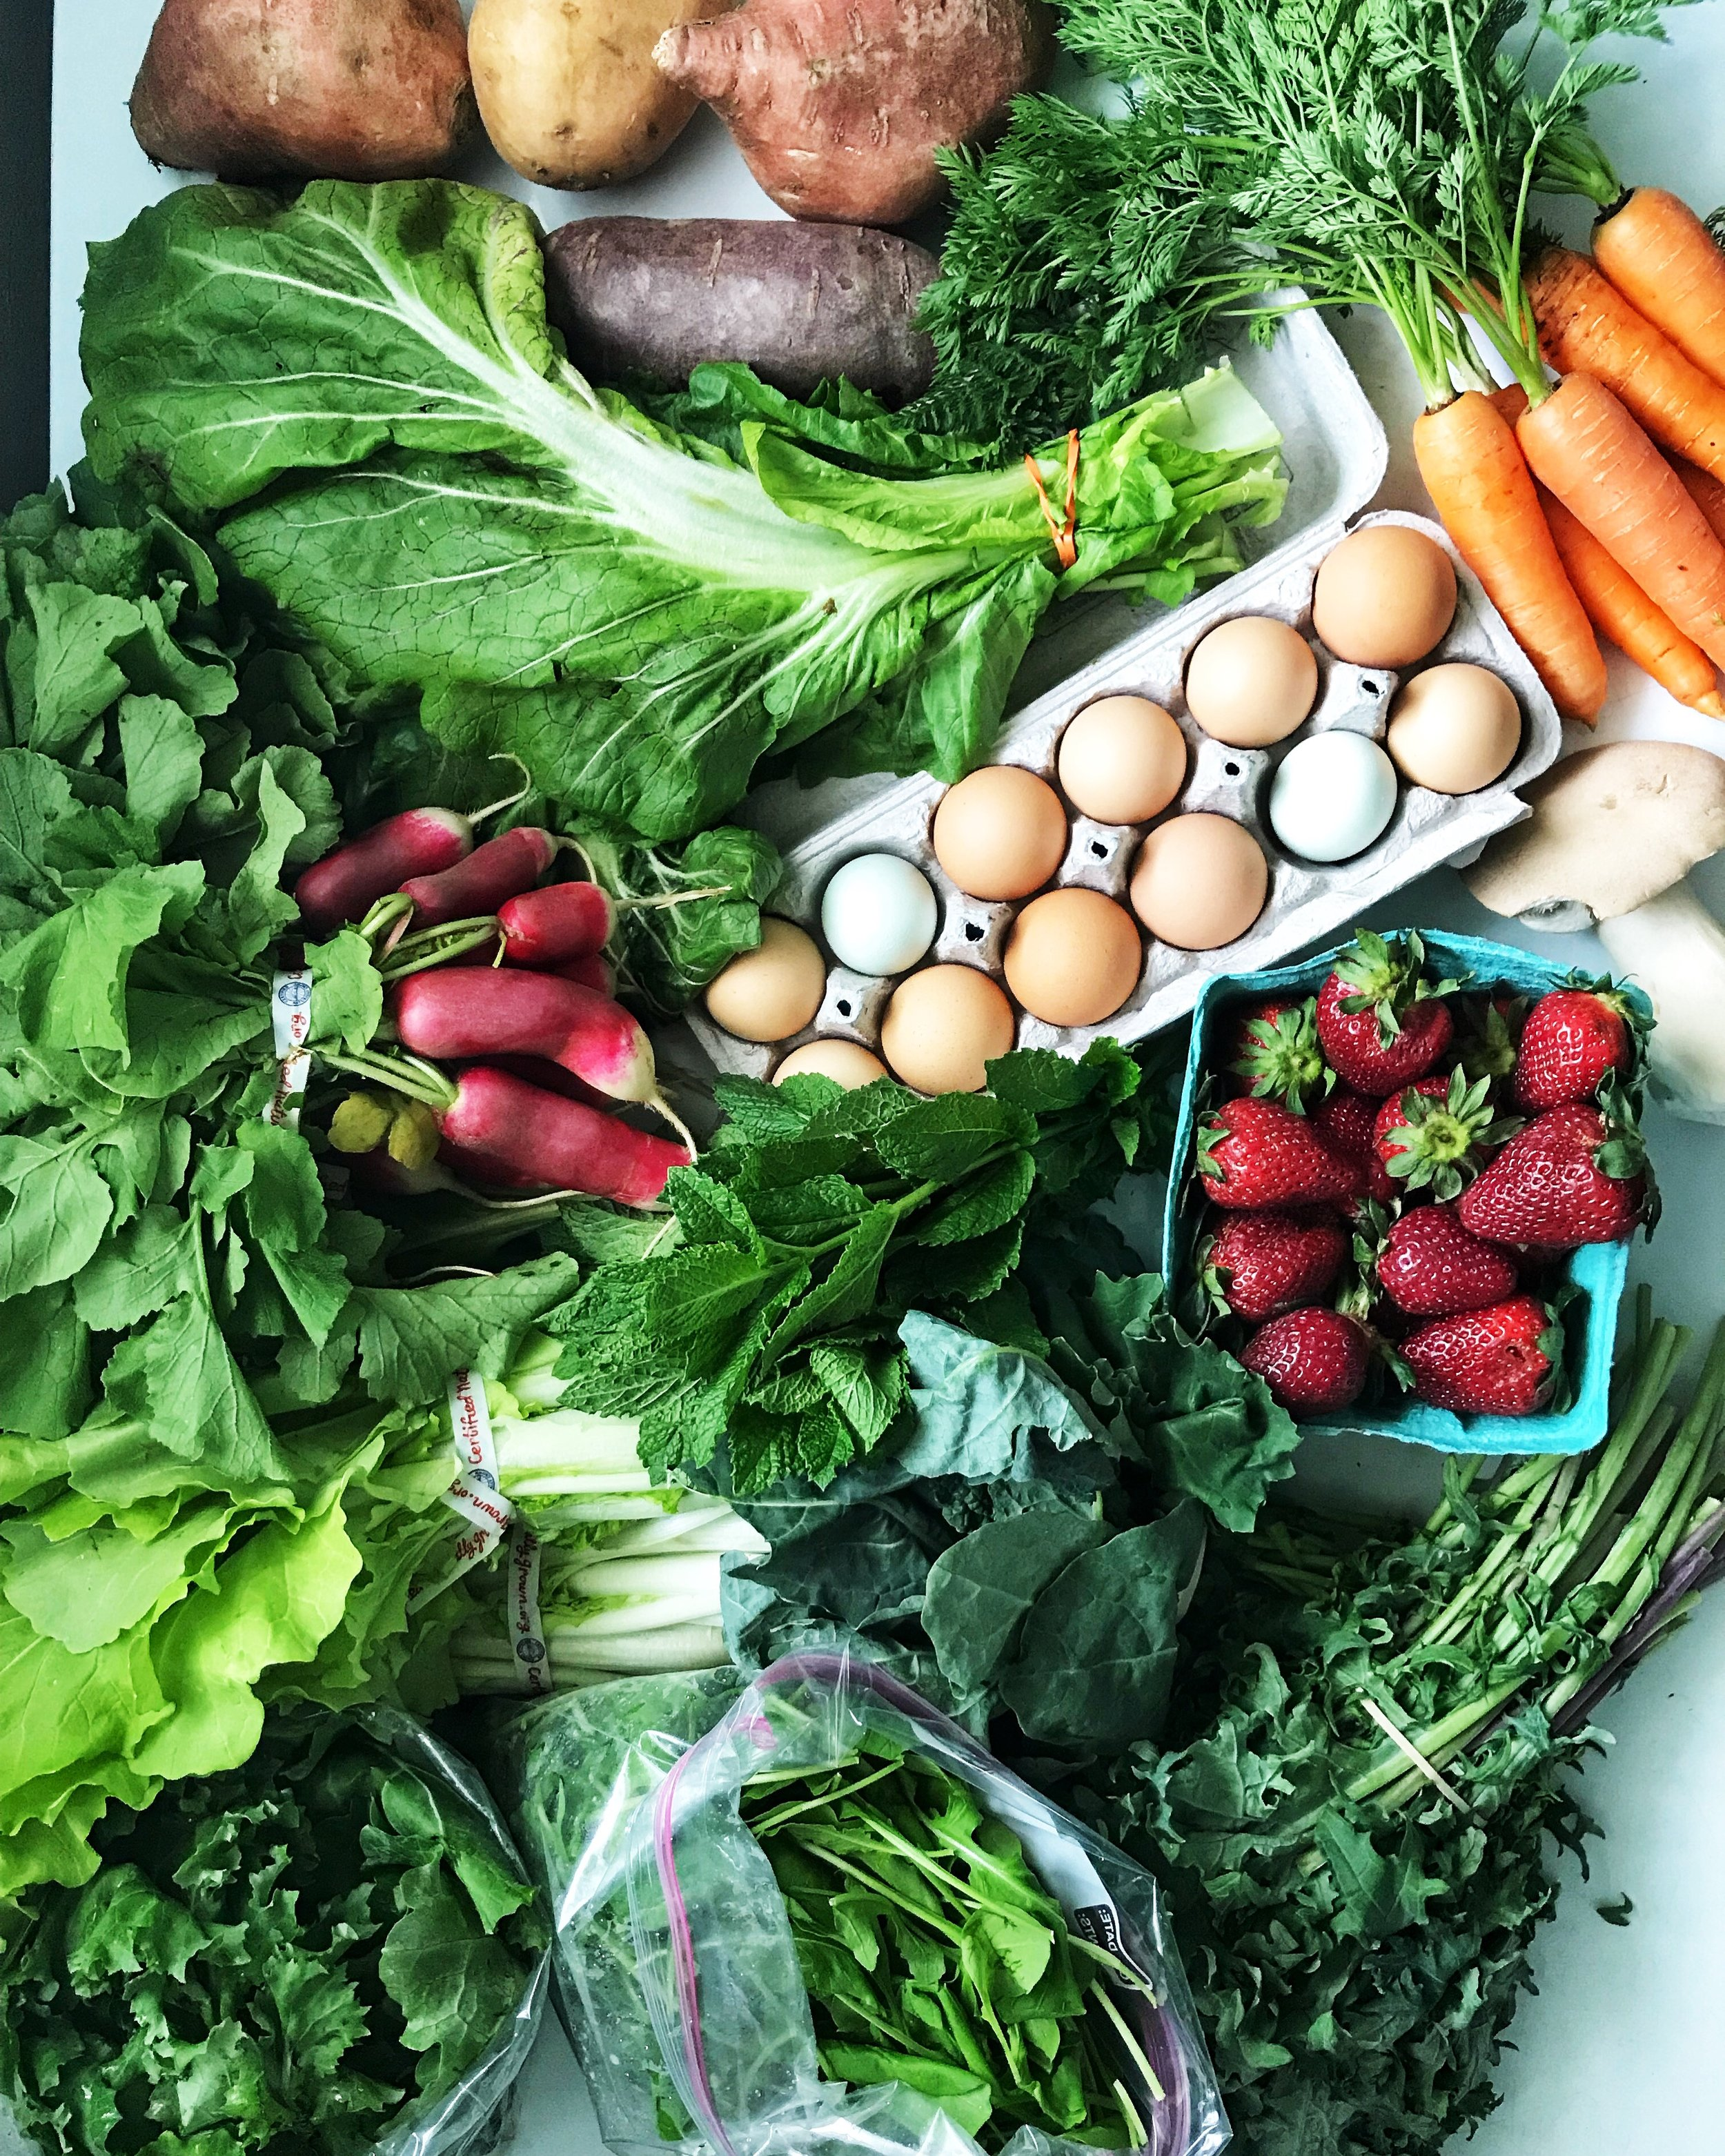 A recent farmer's market haul showcasing the vegetables I eat in a week. I would not have gotten strawberries or sweet potatoes if I were still doing keto Paleo